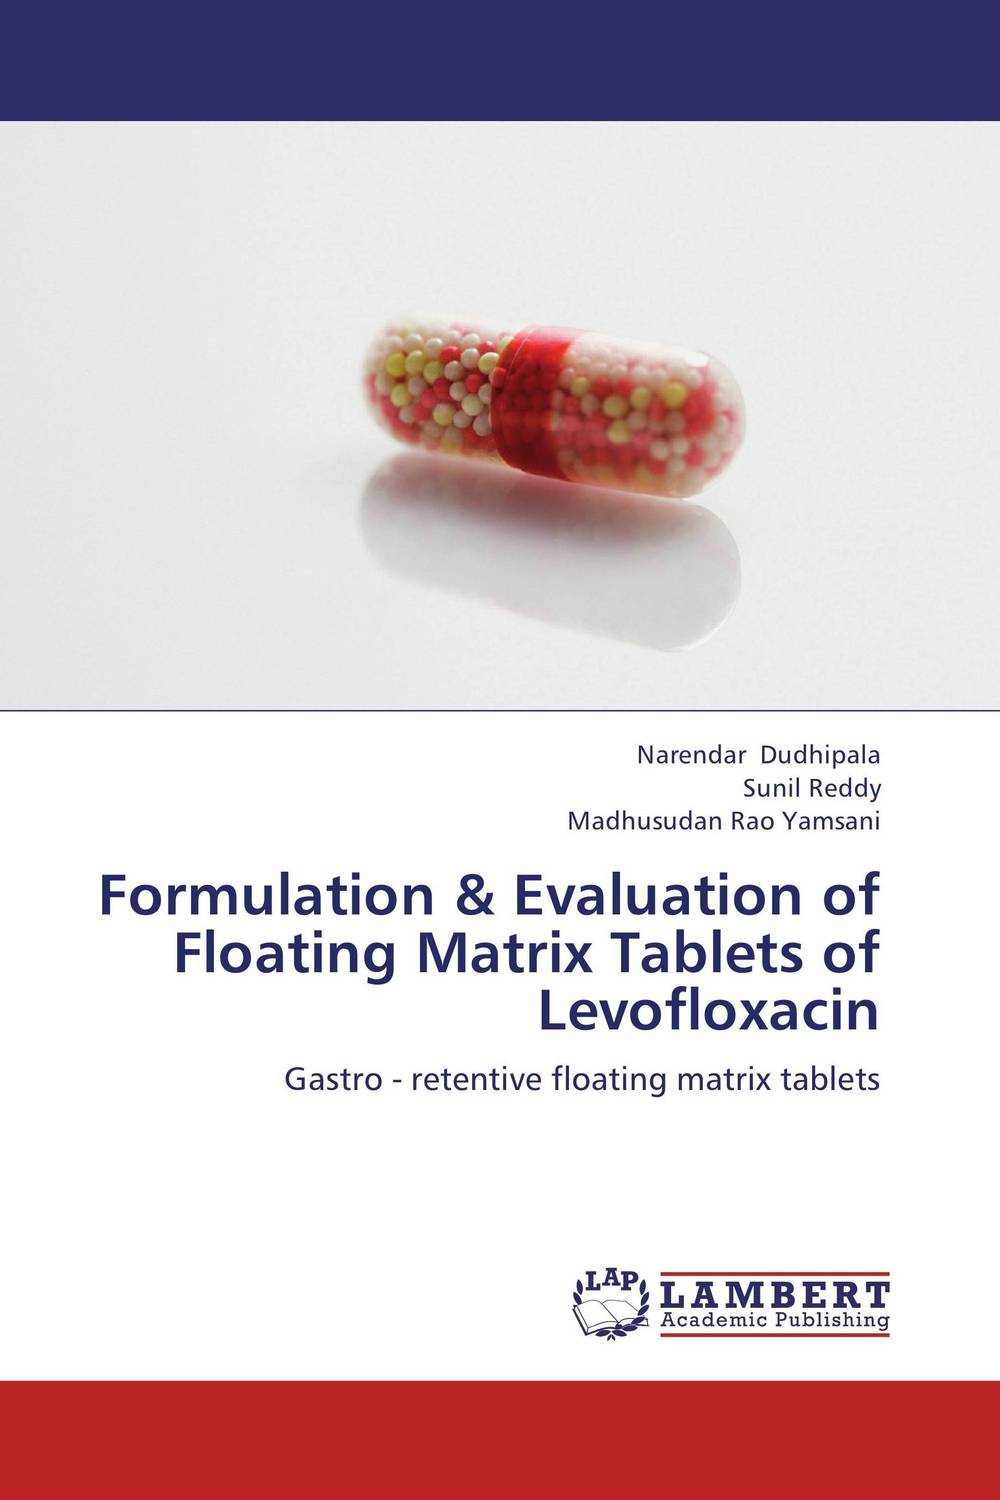 Formulation & Evaluation of  Floating Matrix Tablets of Levofloxacin the role of evaluation as a mechanism for advancing principal practice